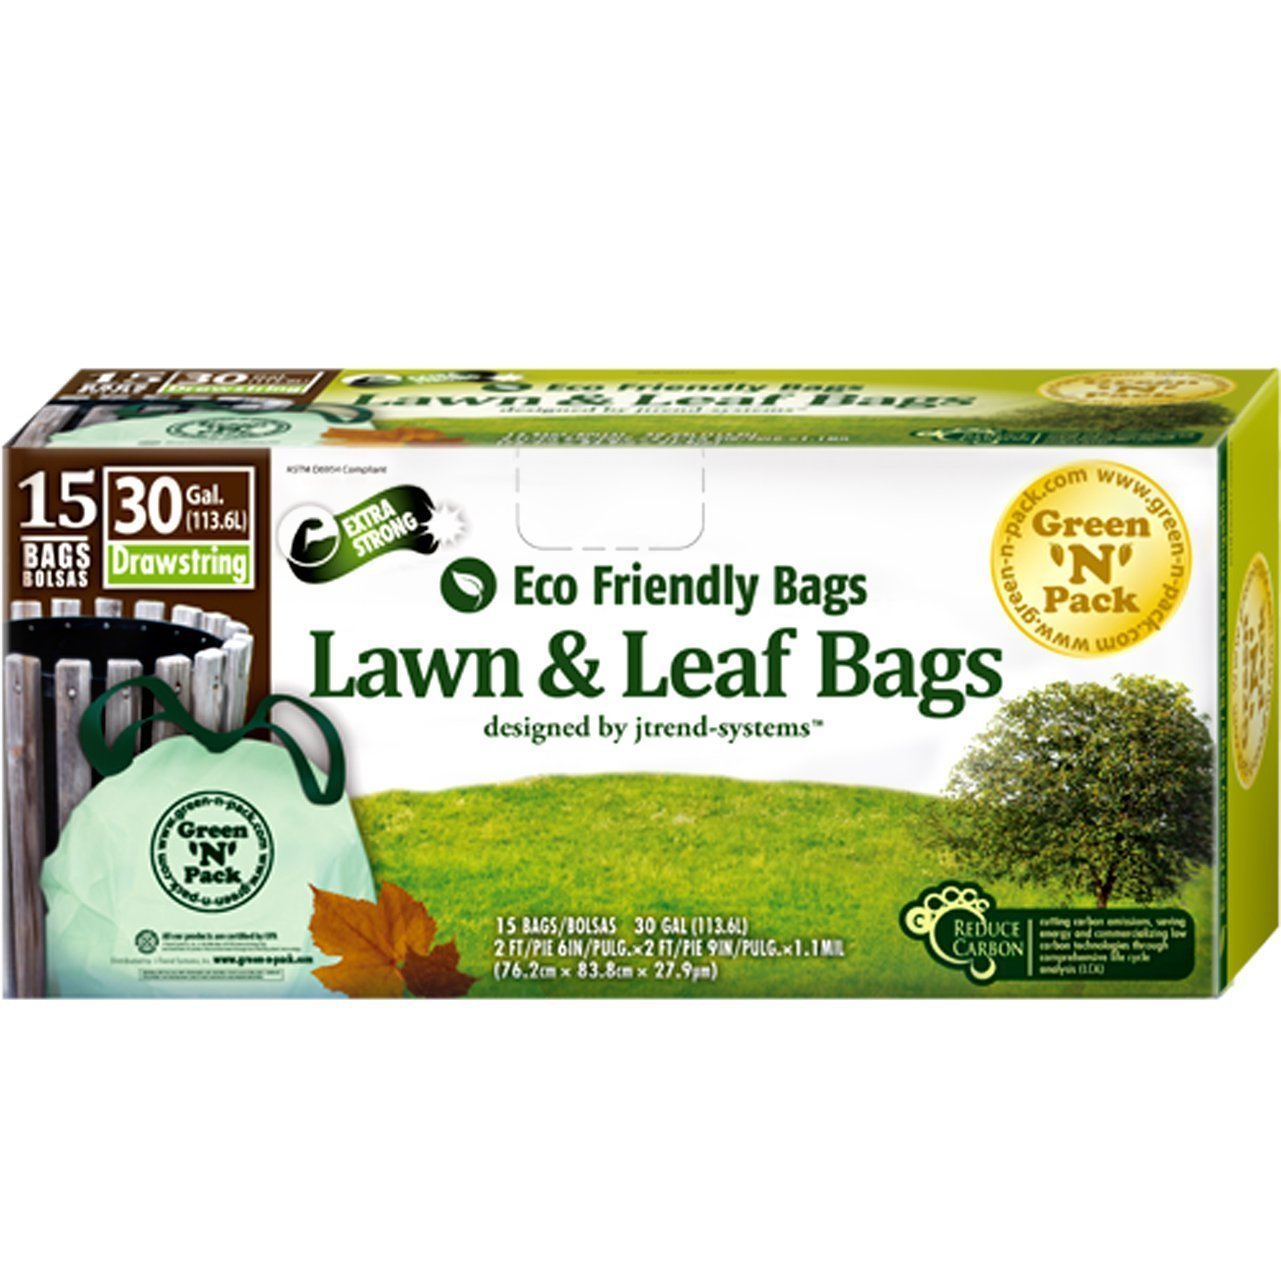 Amazon.com: Green N Pack Eco Friendly 30 Gallon Drawstring ...